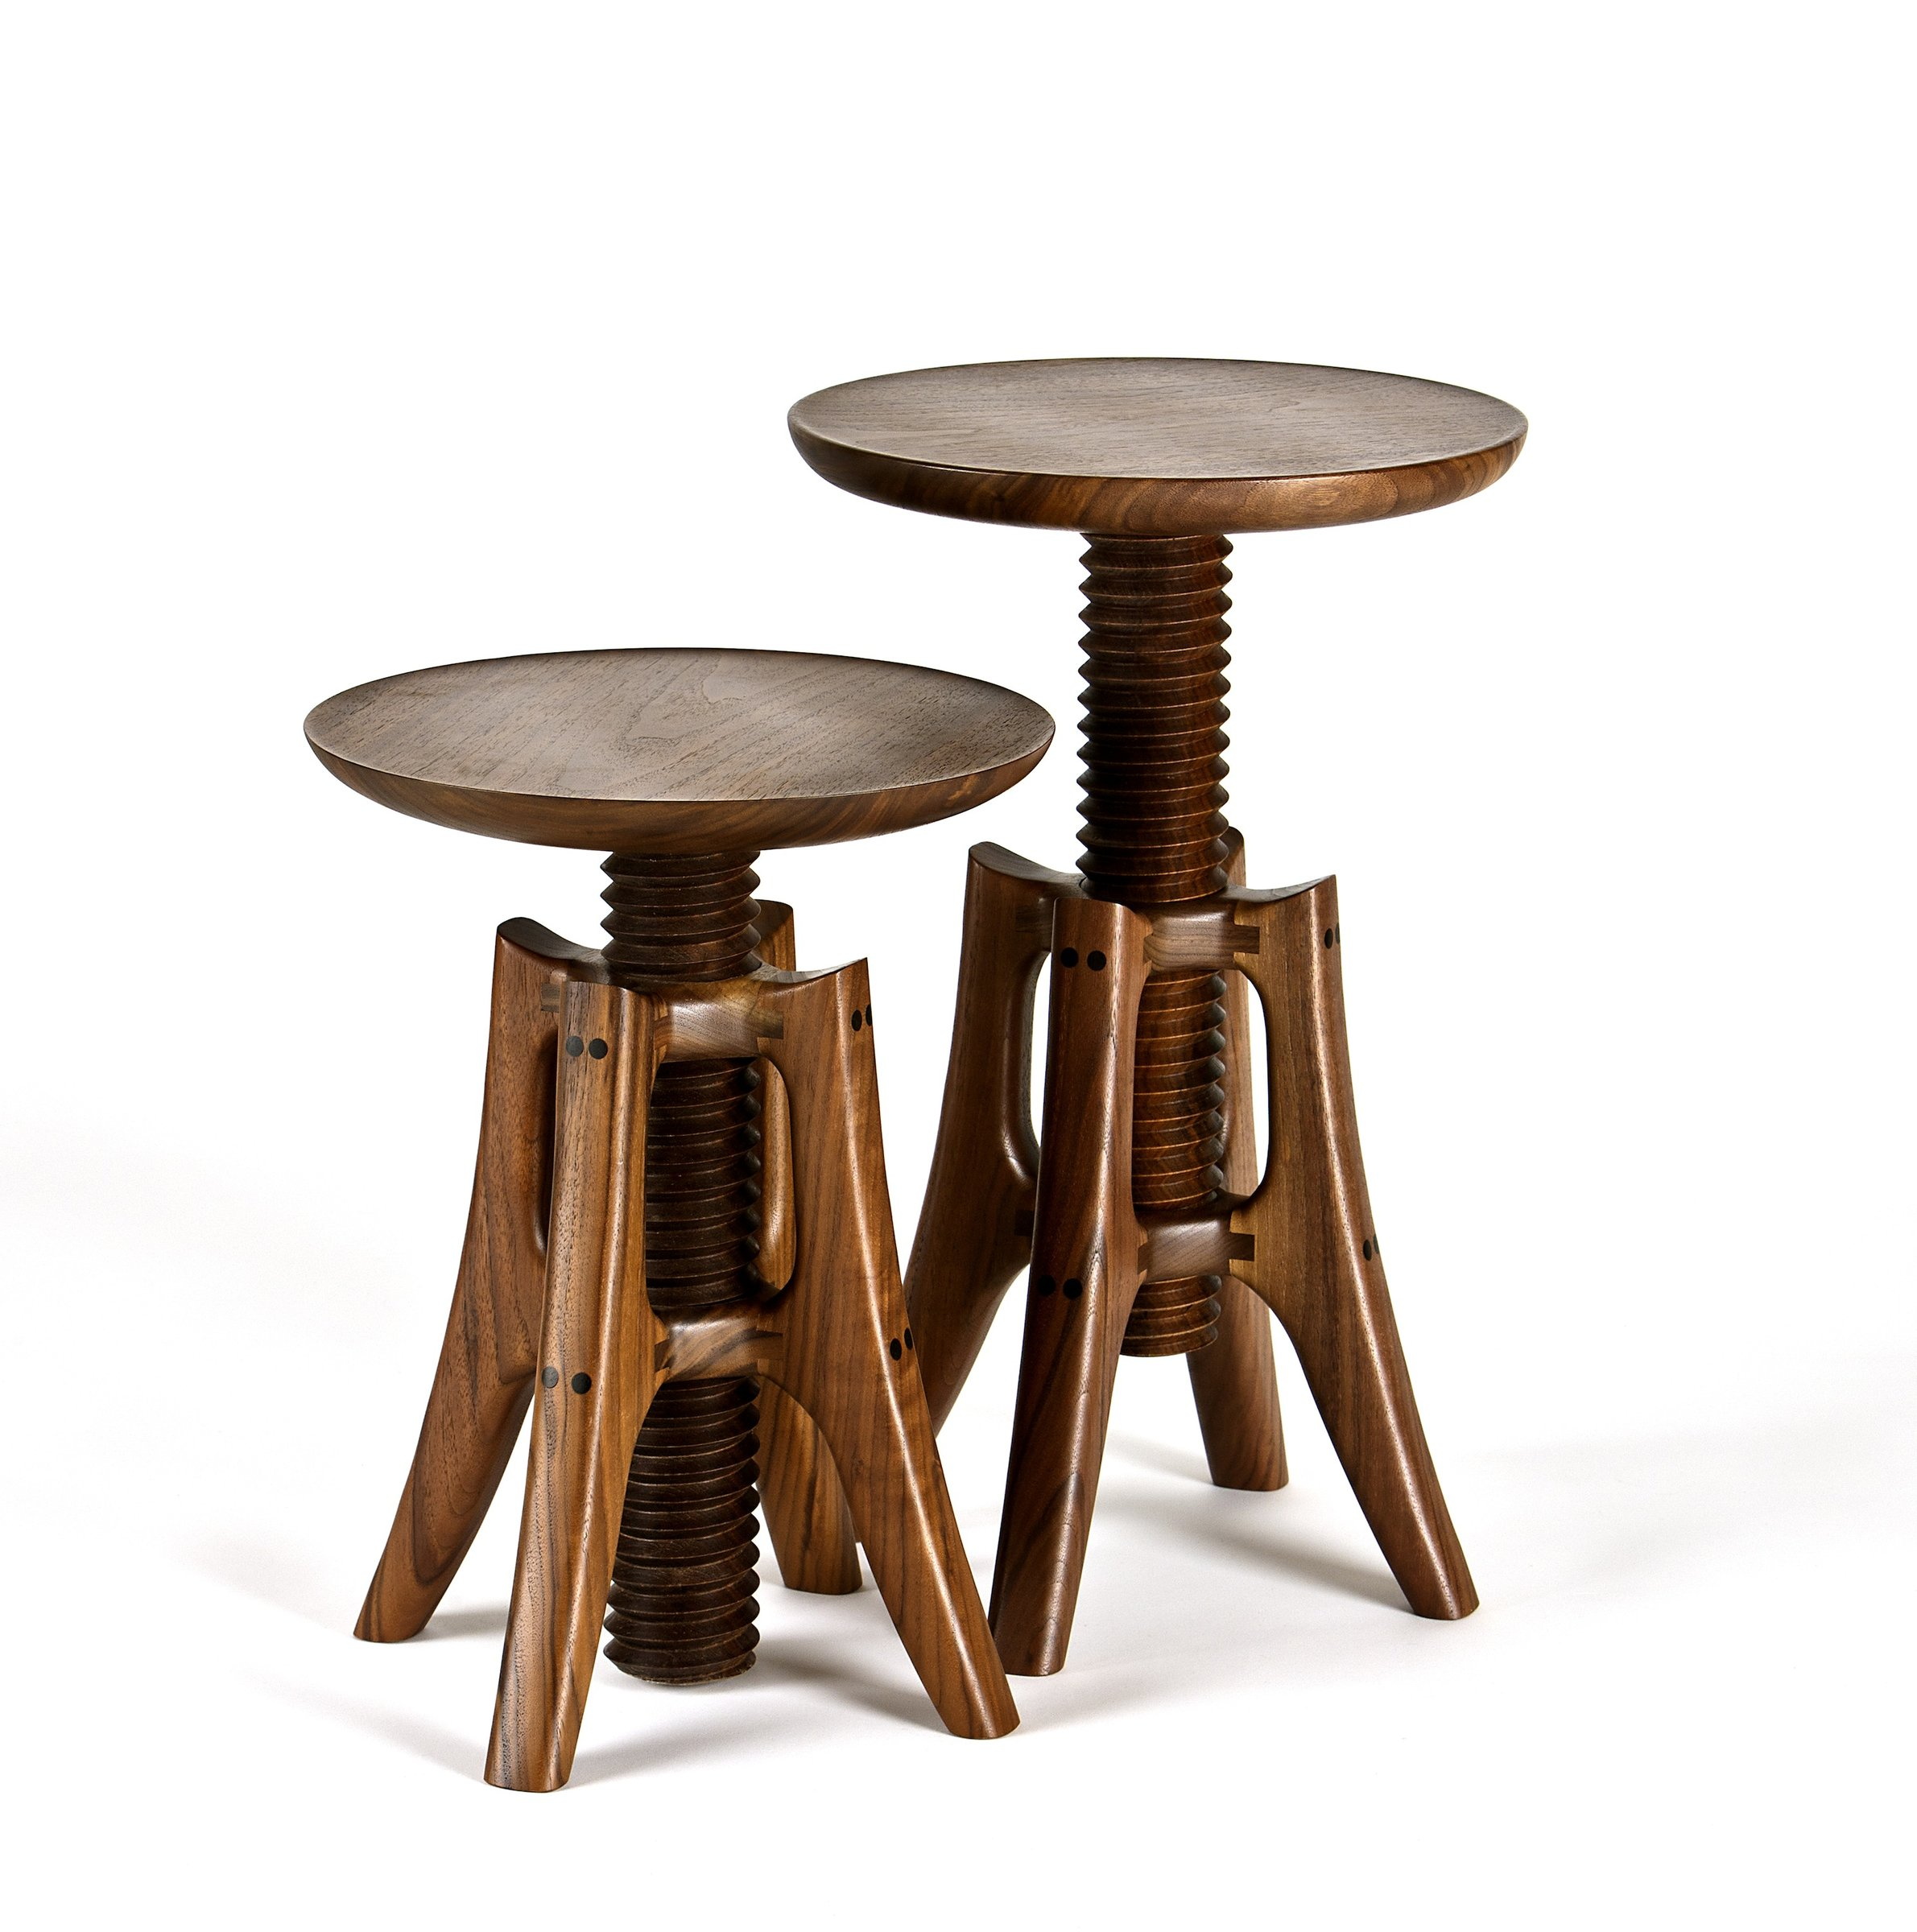 Piano Stool By James Pearce Wood Stool Artful Home